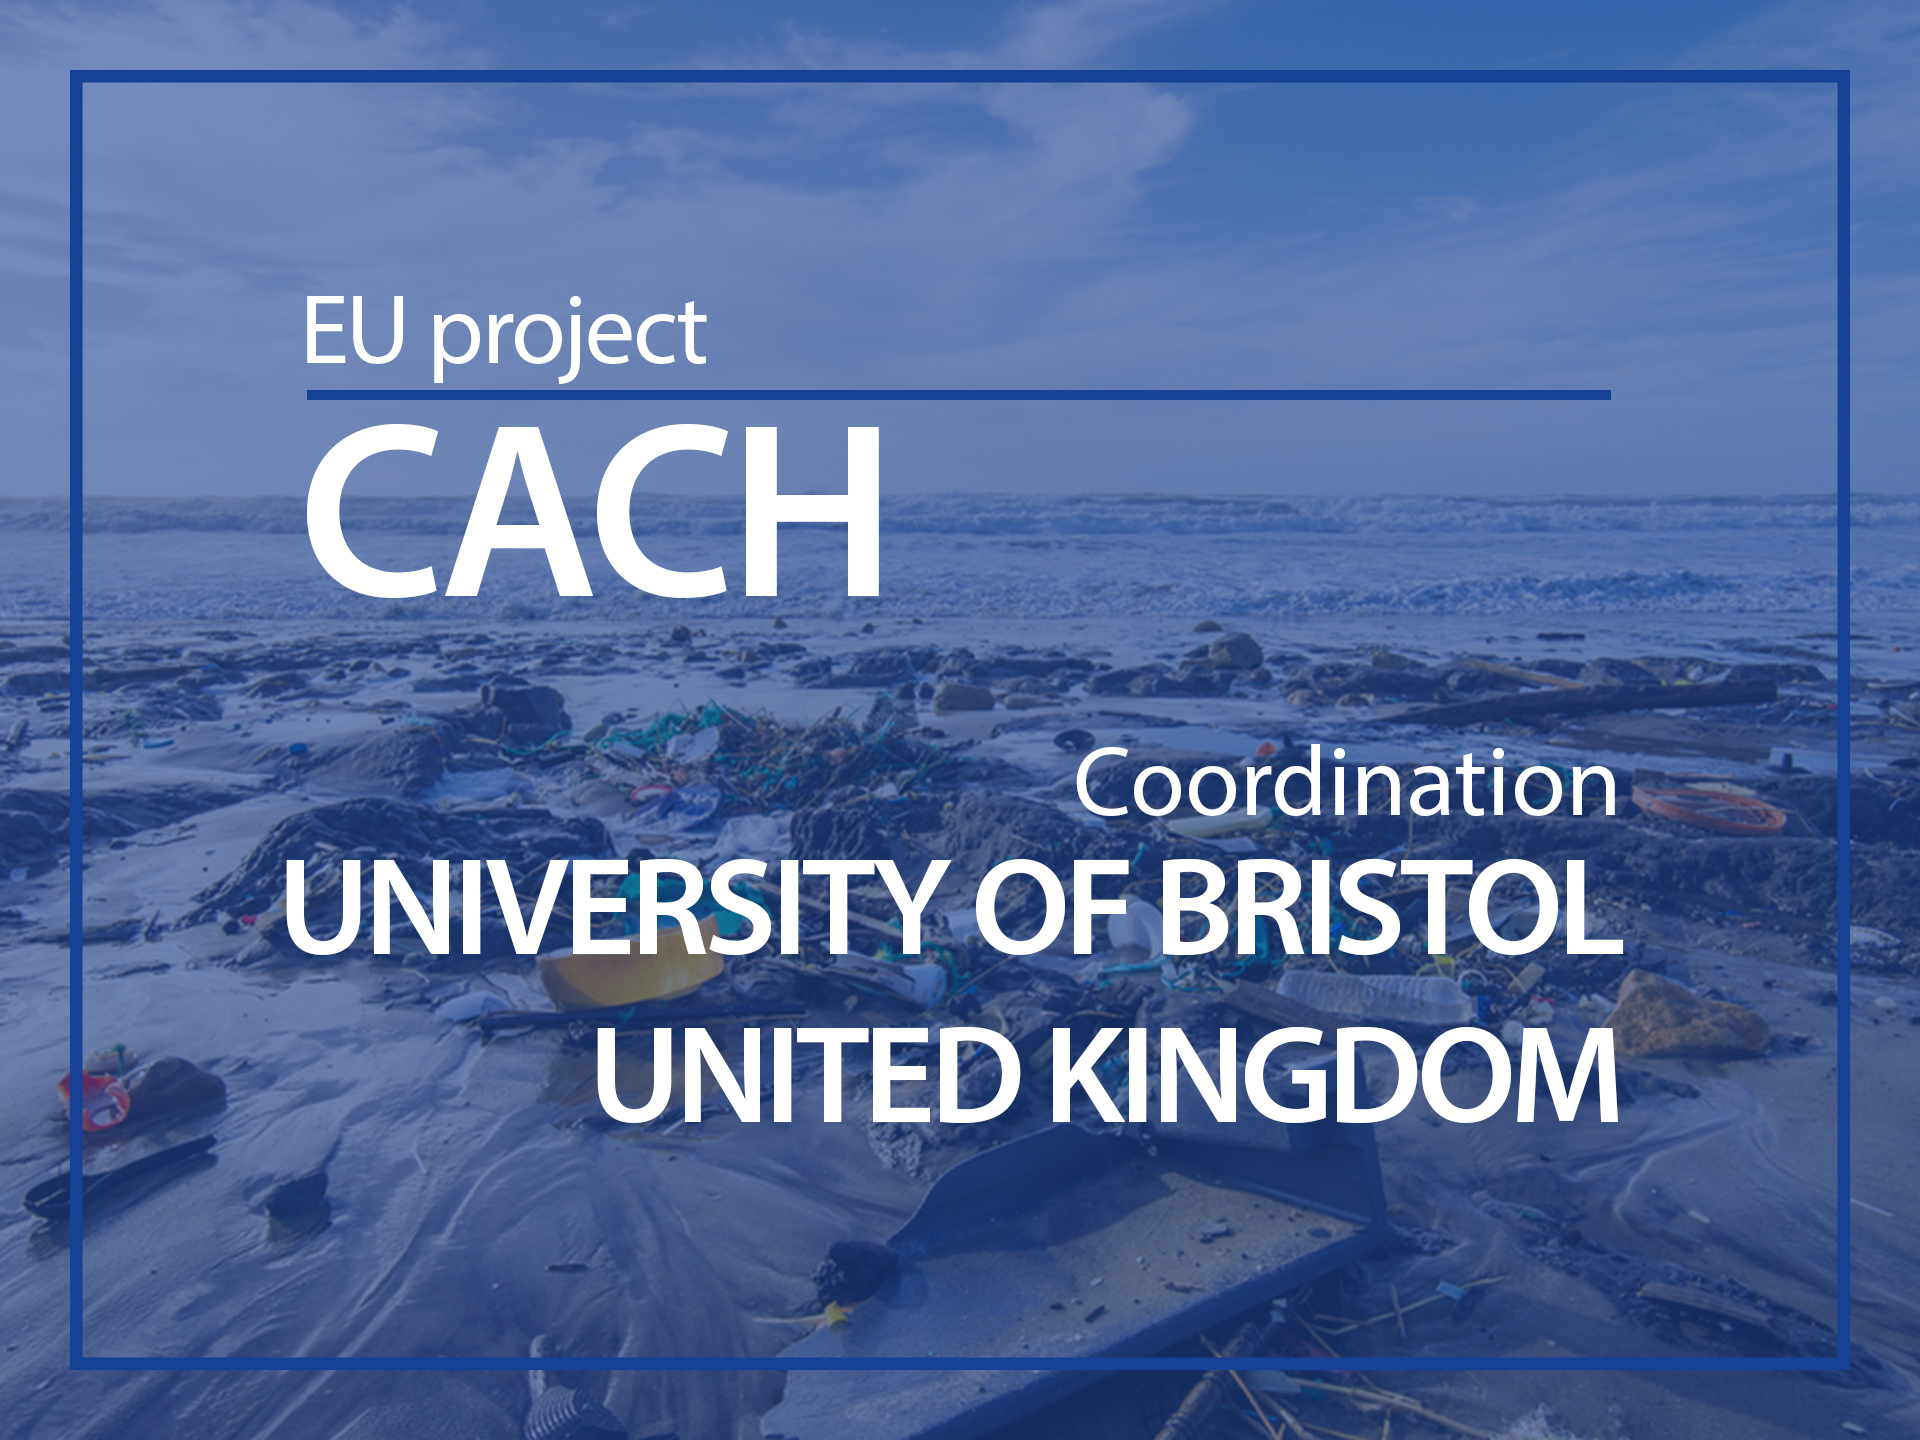 EU Project : CACH